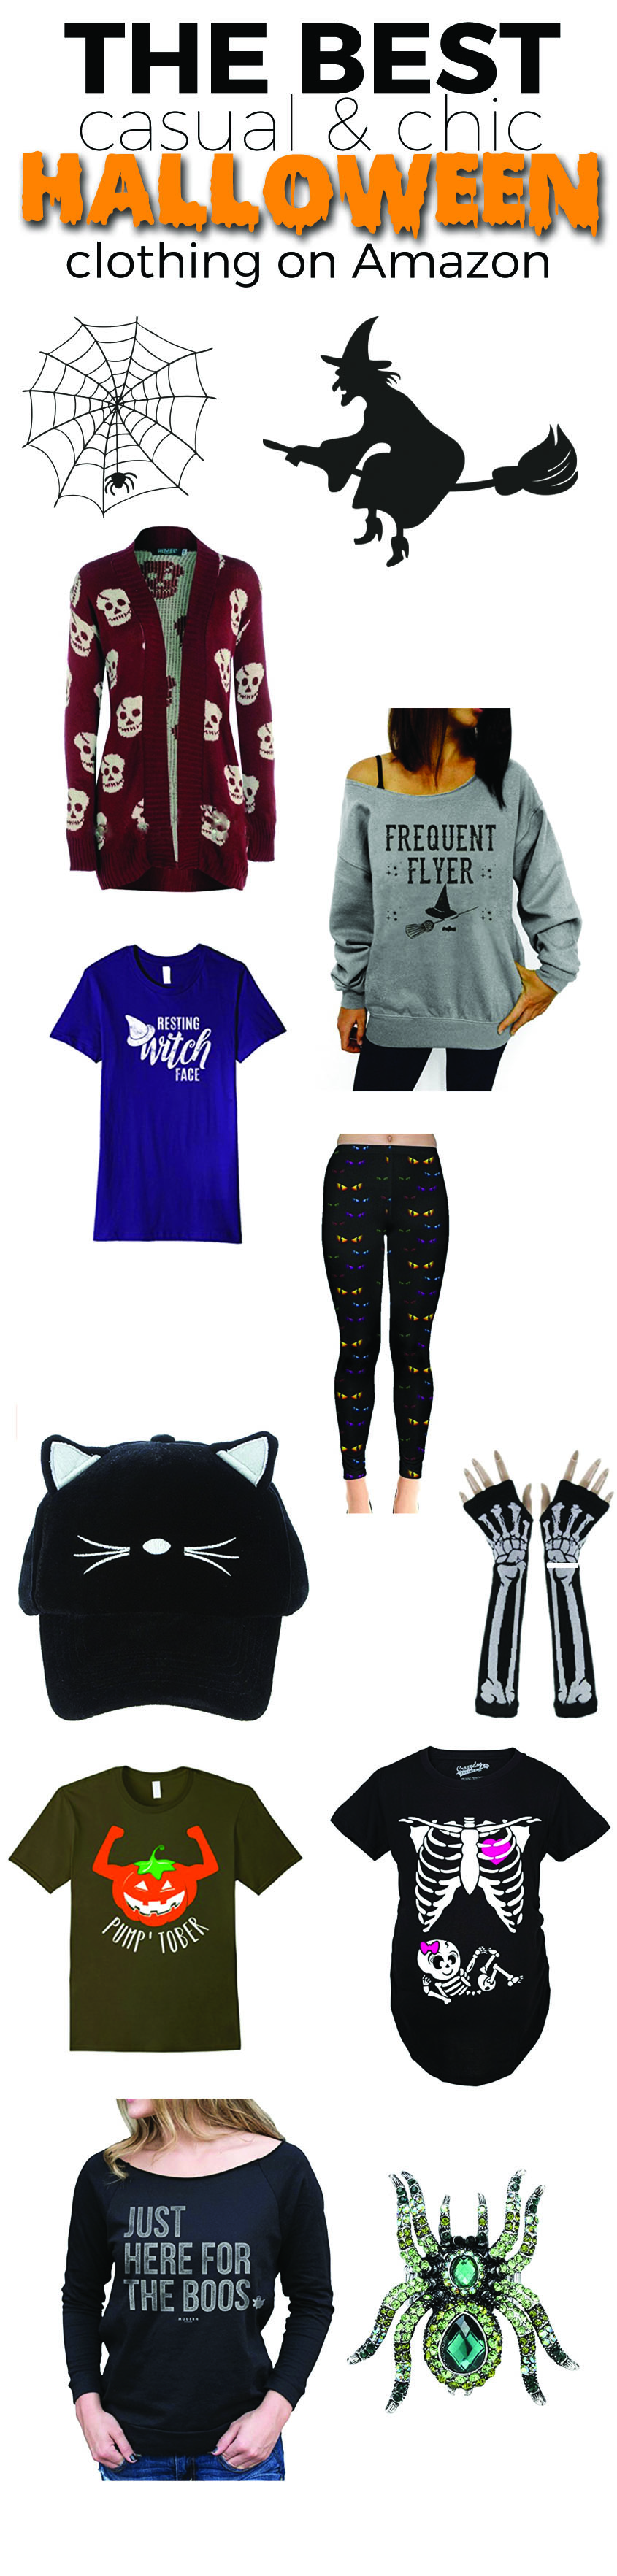 The Best Casual & Chic Halloween Themed Clothing on Amazon ...